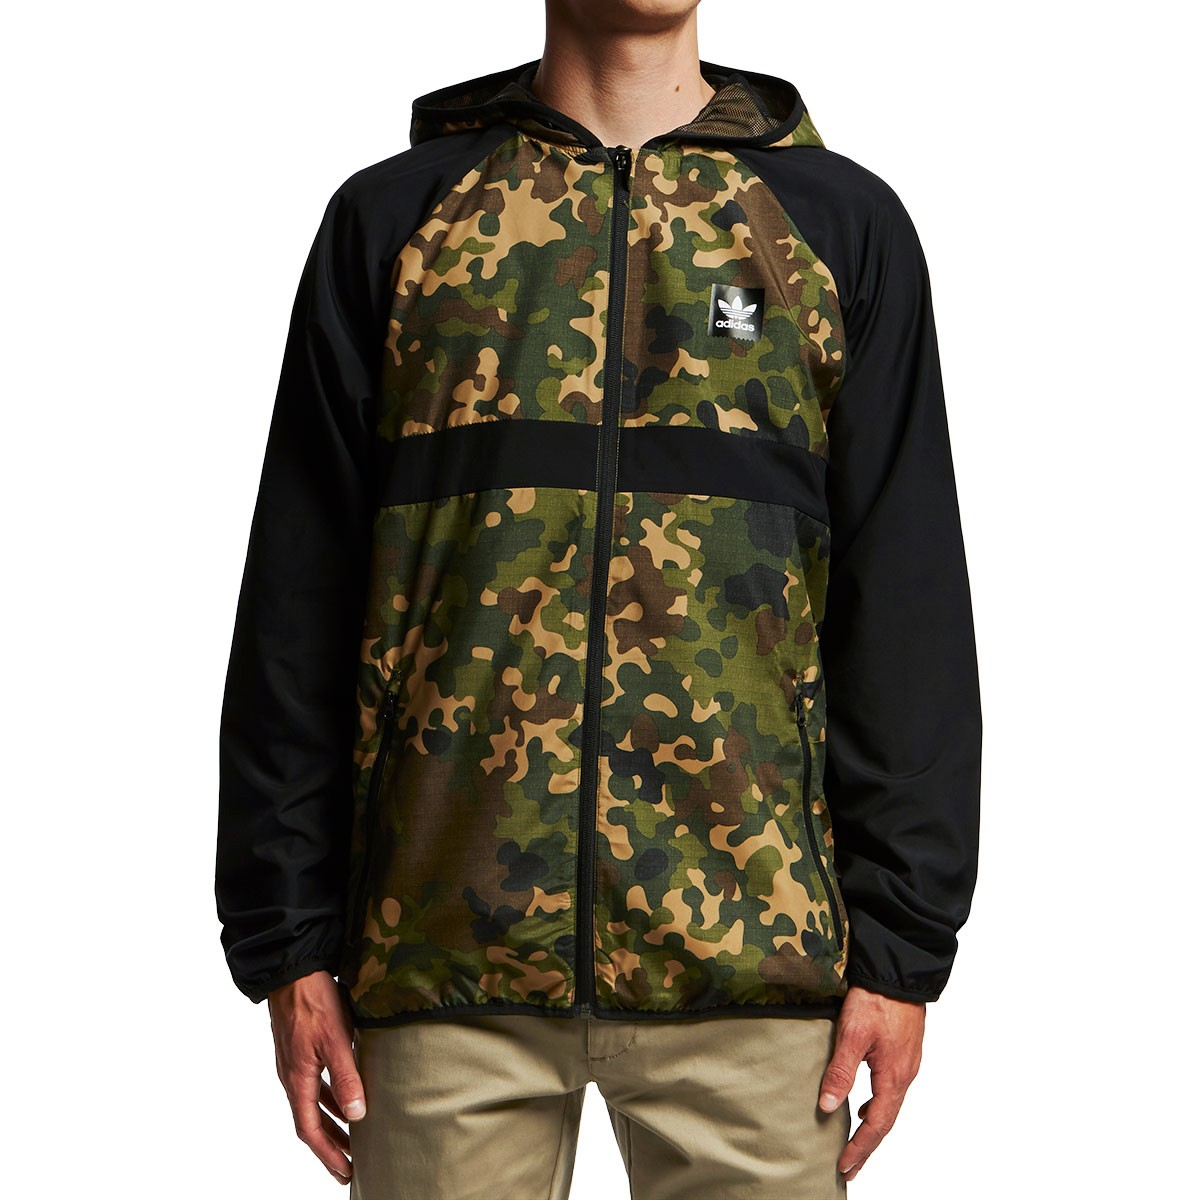 adidas camo windbreaker jacket camo print black. Black Bedroom Furniture Sets. Home Design Ideas